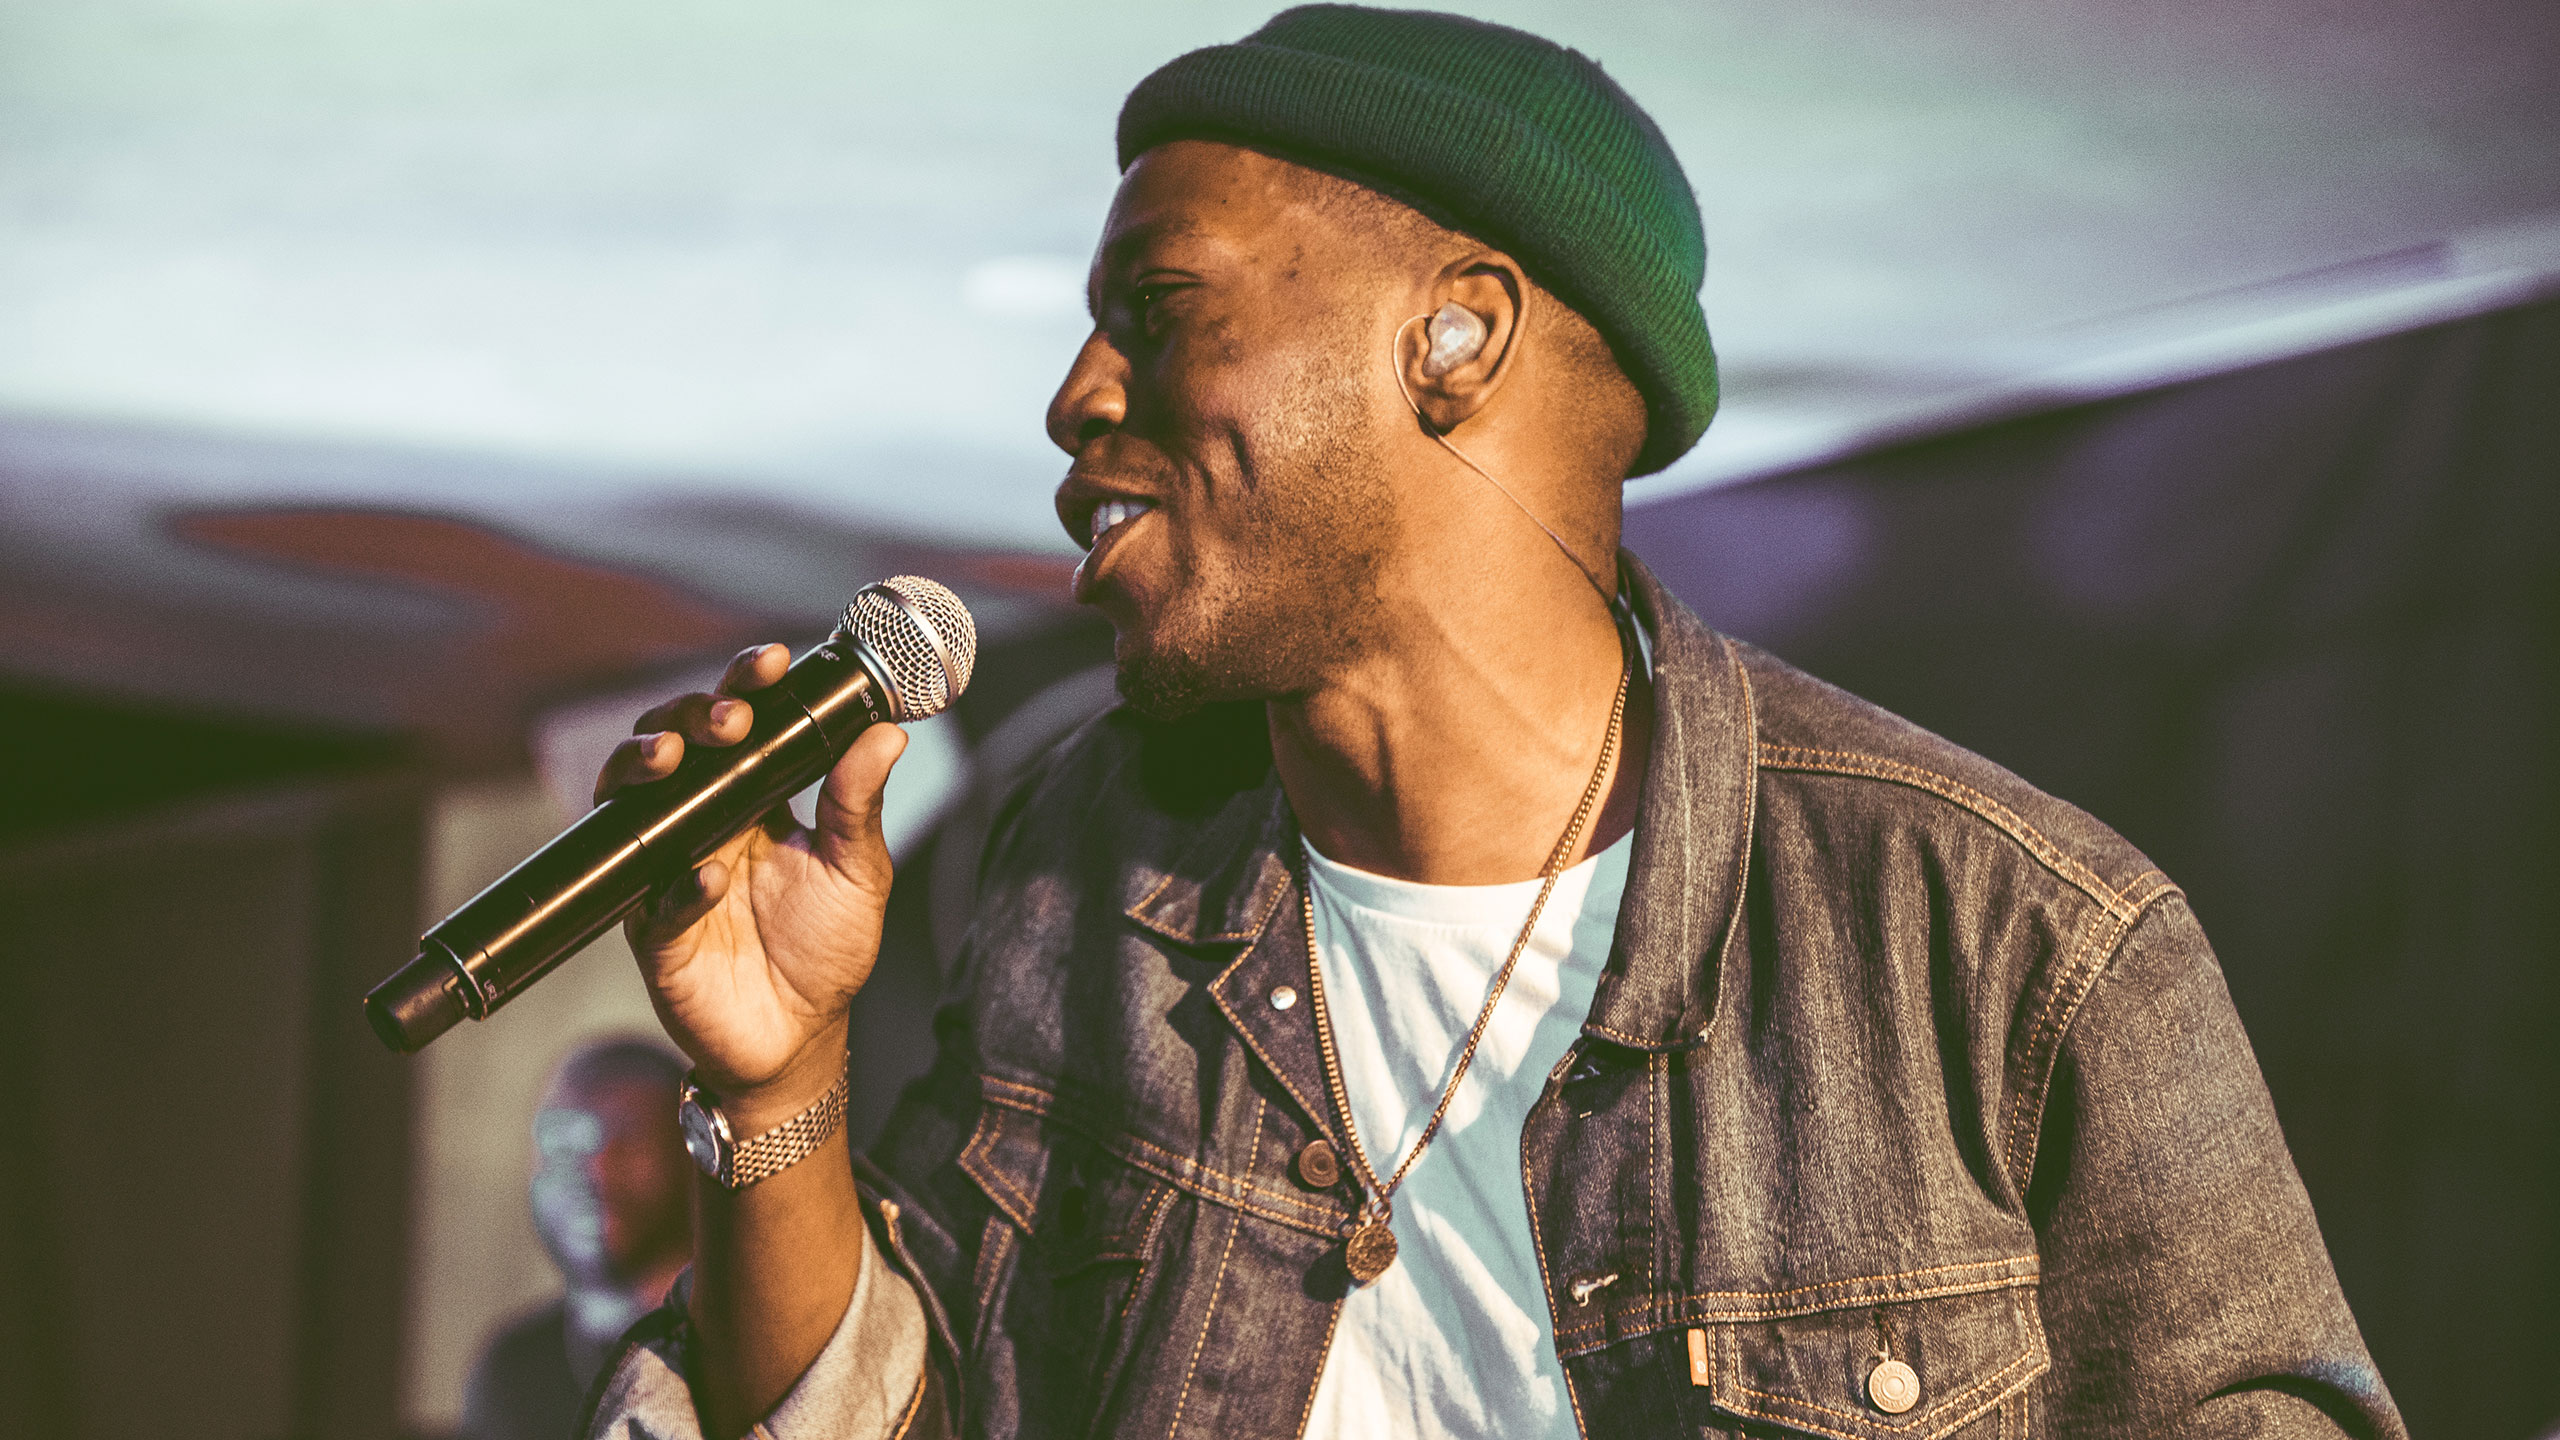 Tiggs Da Author singing into a microphone, wearing a green hat and denim jacket, at PRS Presents